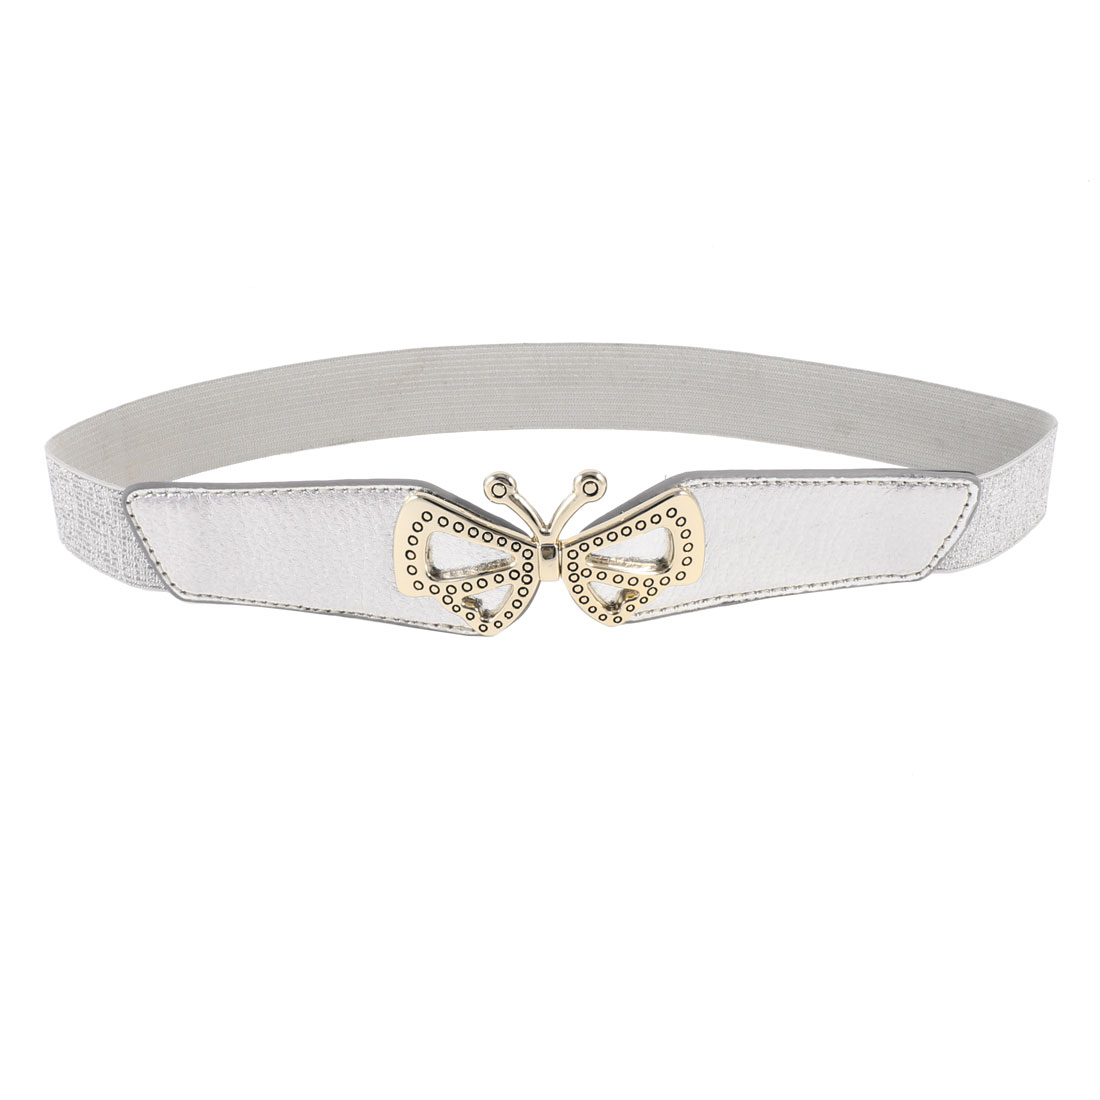 Woman Butterfly Shaped Metal Interlocking Buckle Stretchy Waist Belt Silver Tone